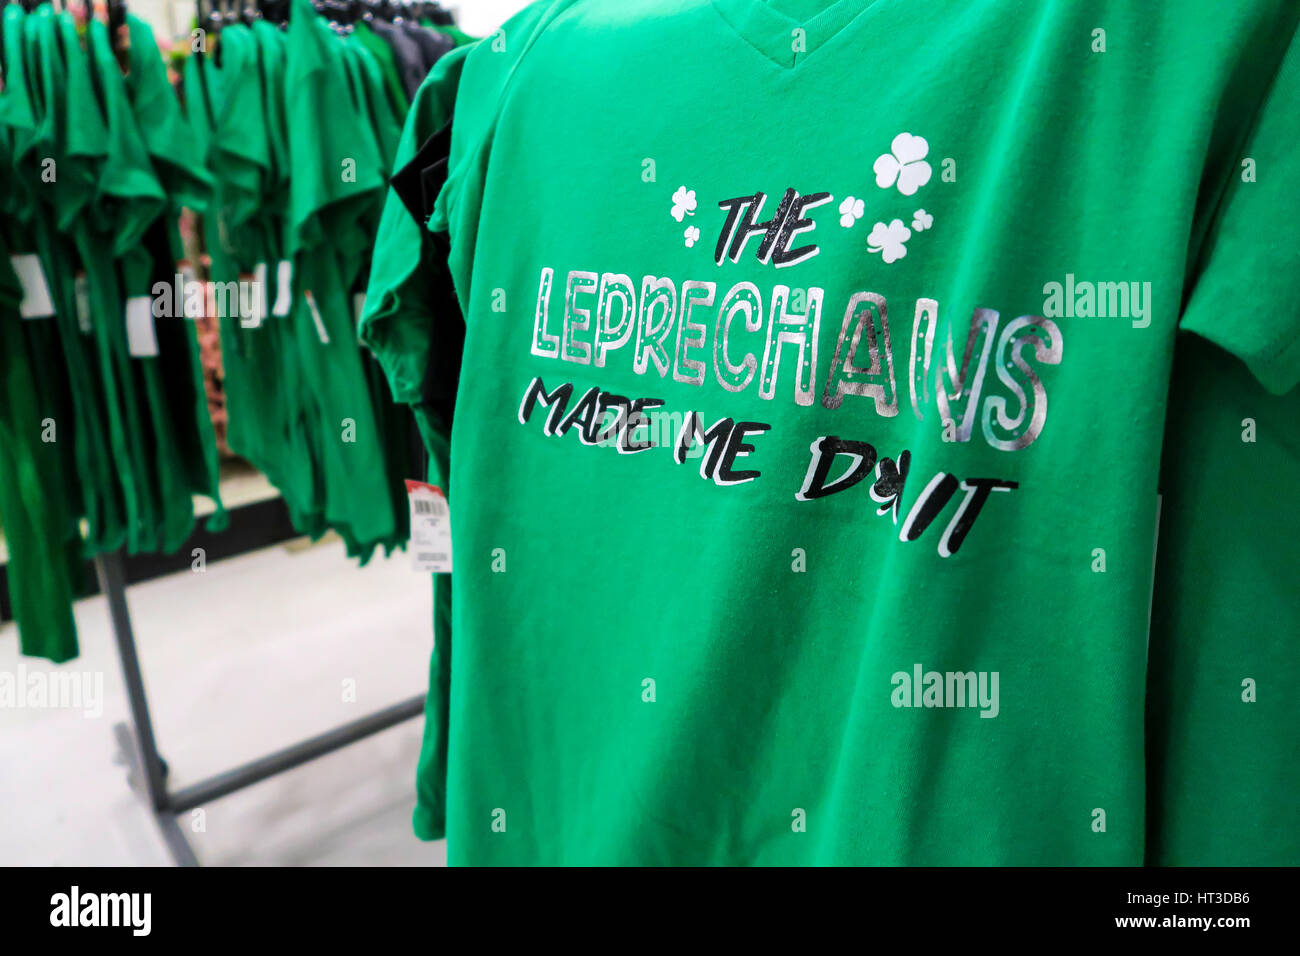 6248ef7bb St. Patrick's Day Themed Merchandise at Kmart, NYC, USA Stock Photo ...